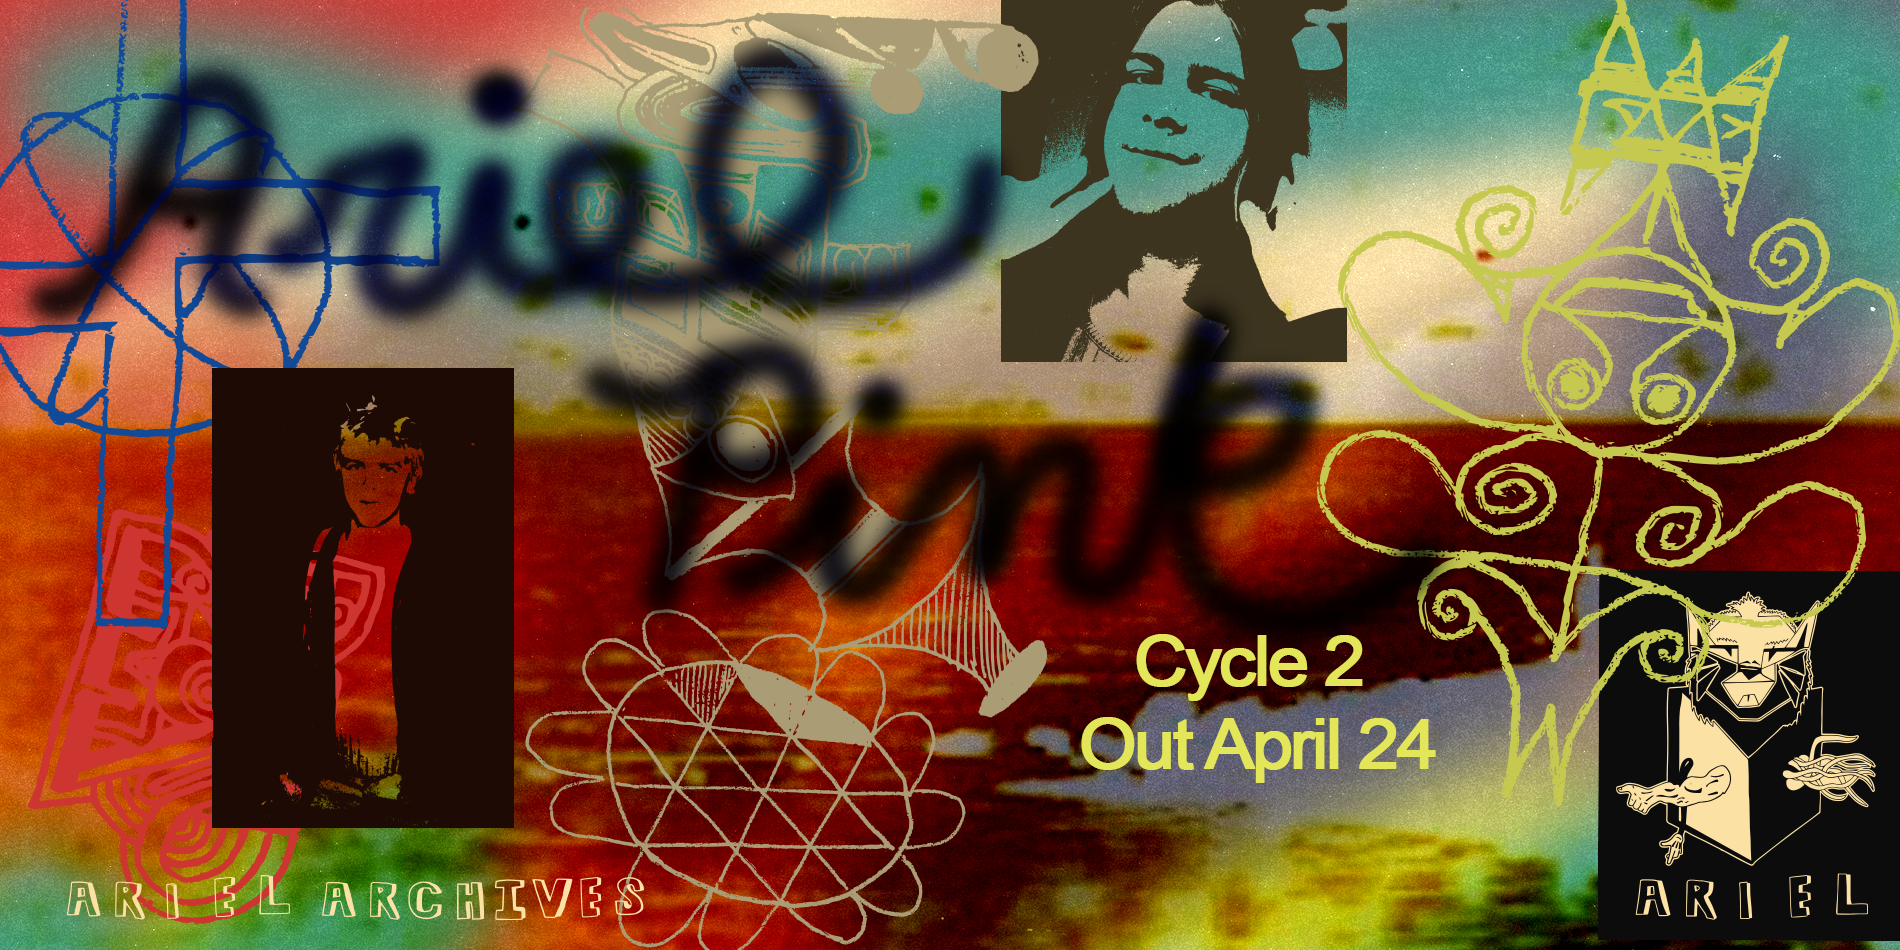 ariel pink archive cycle 2 site banner